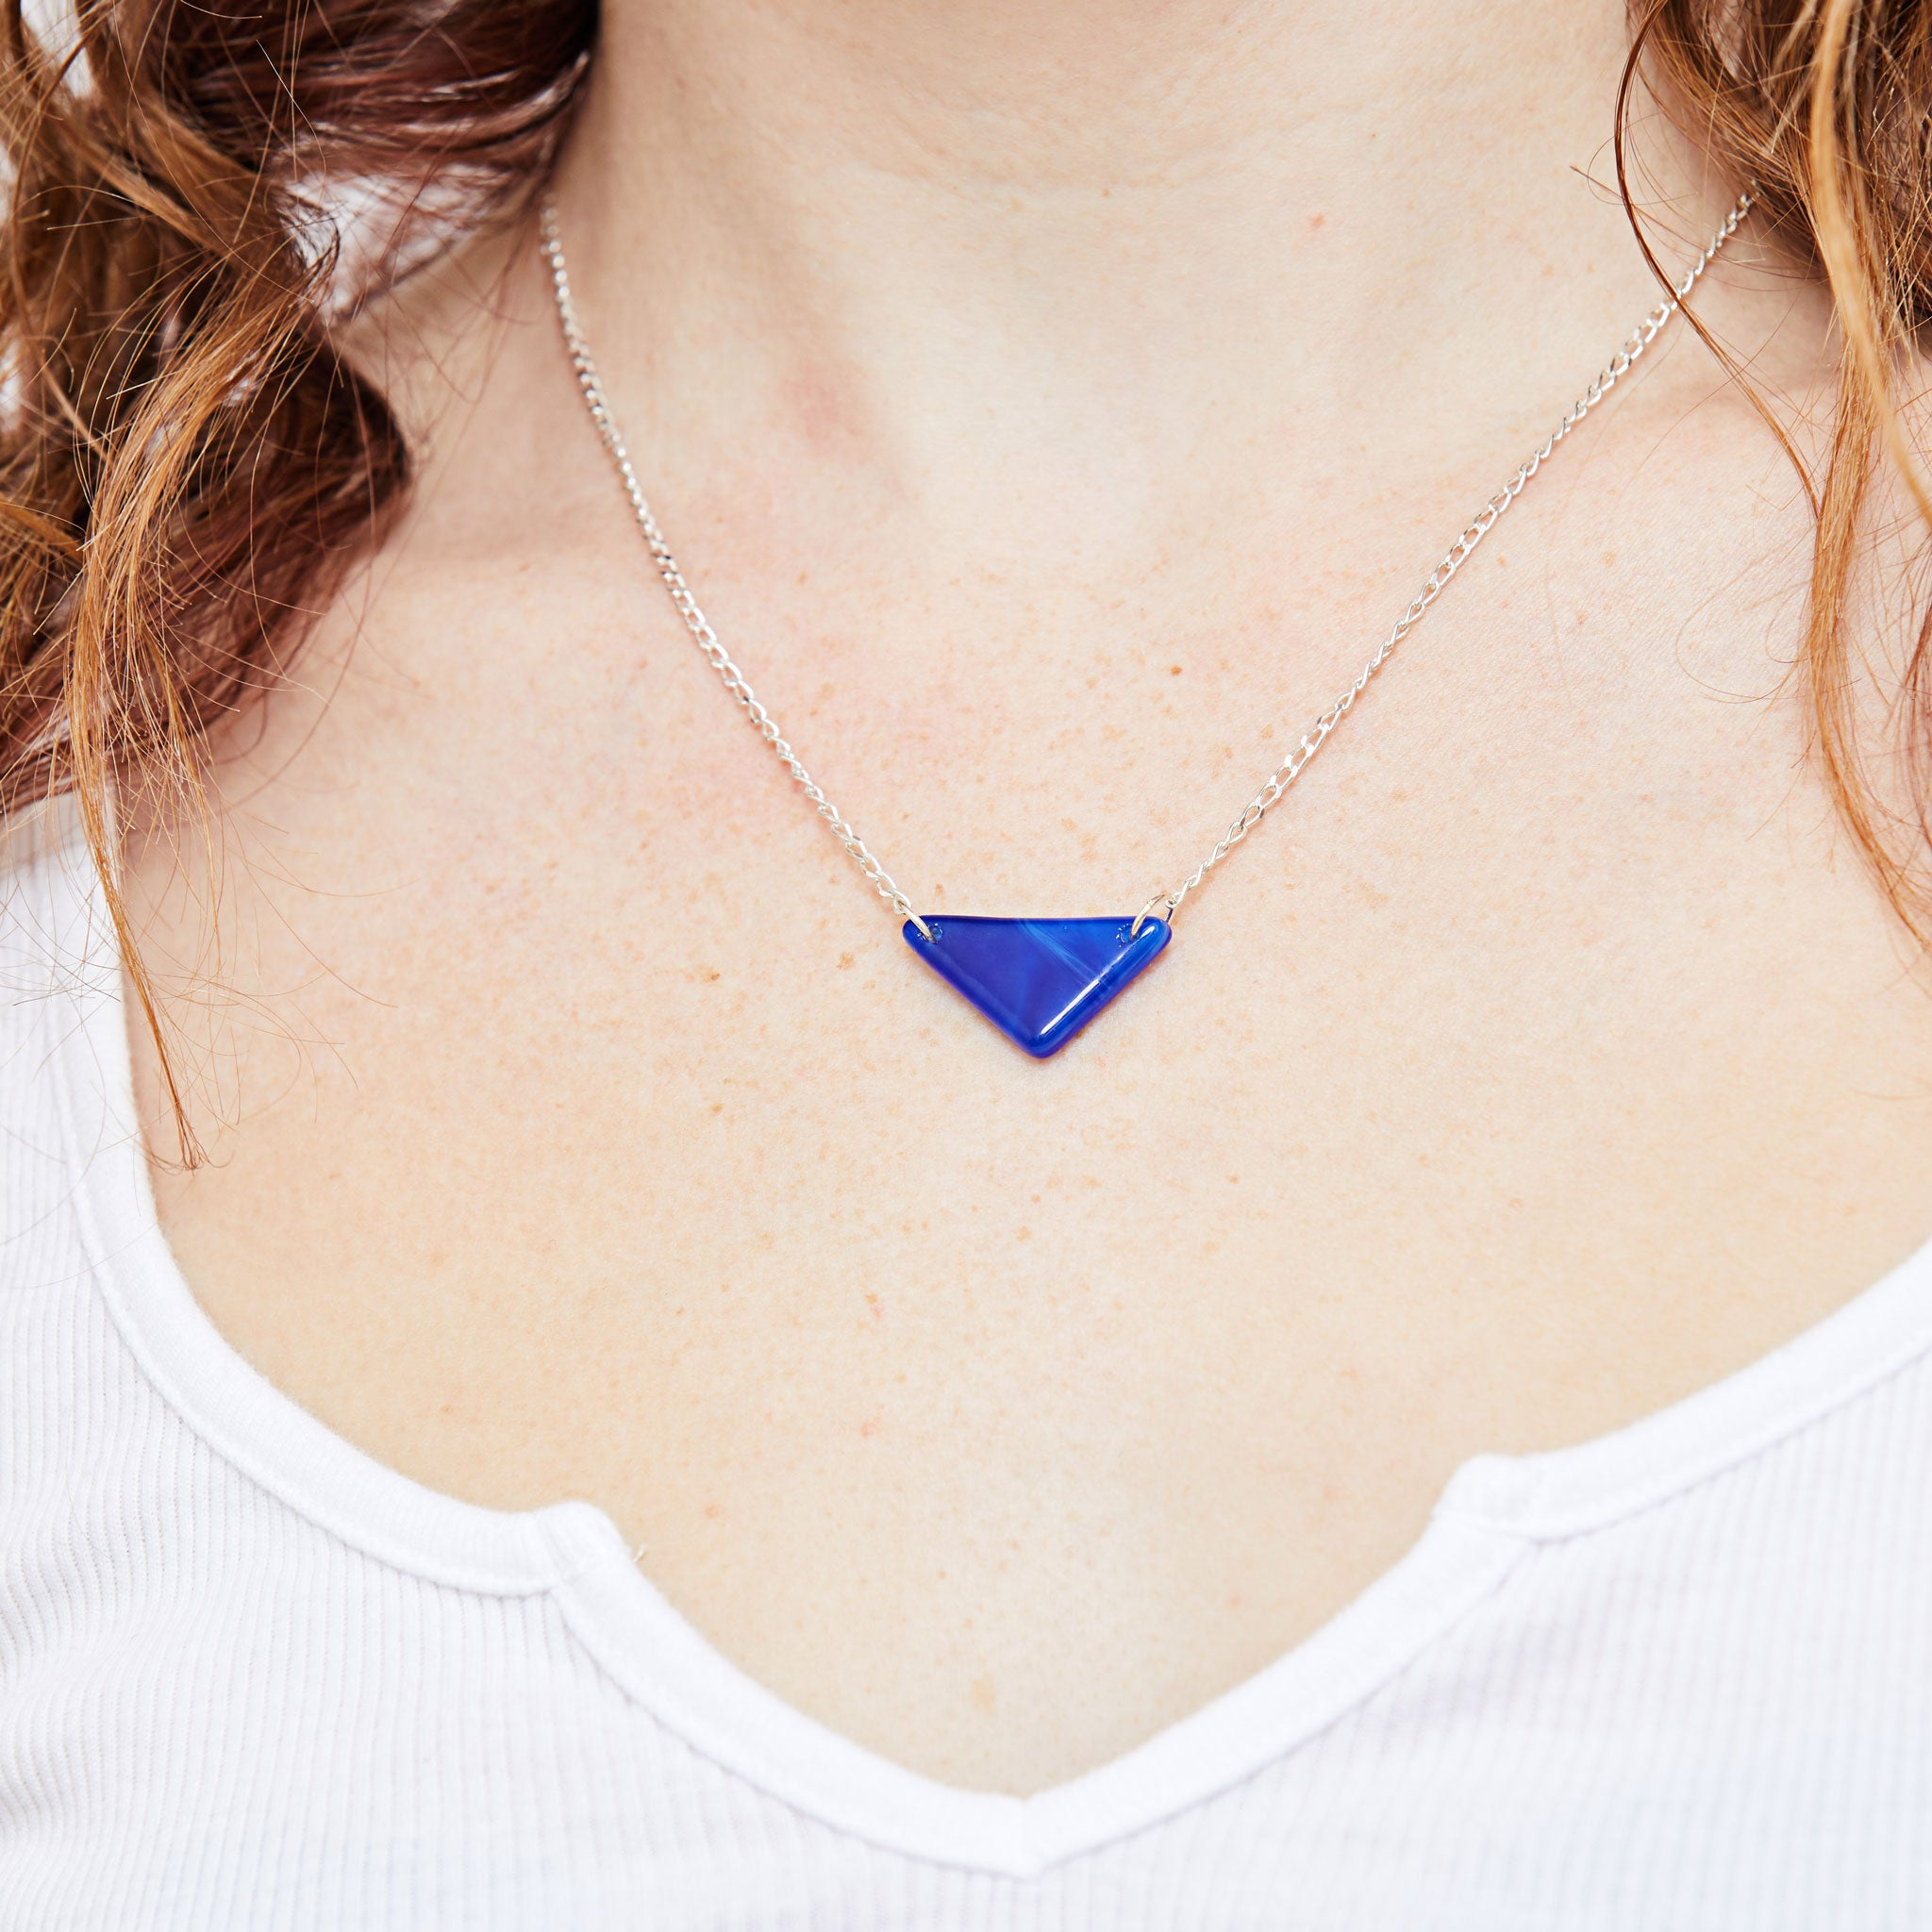 Model wearing sterling silver necklace with handmade blue glass accent piece